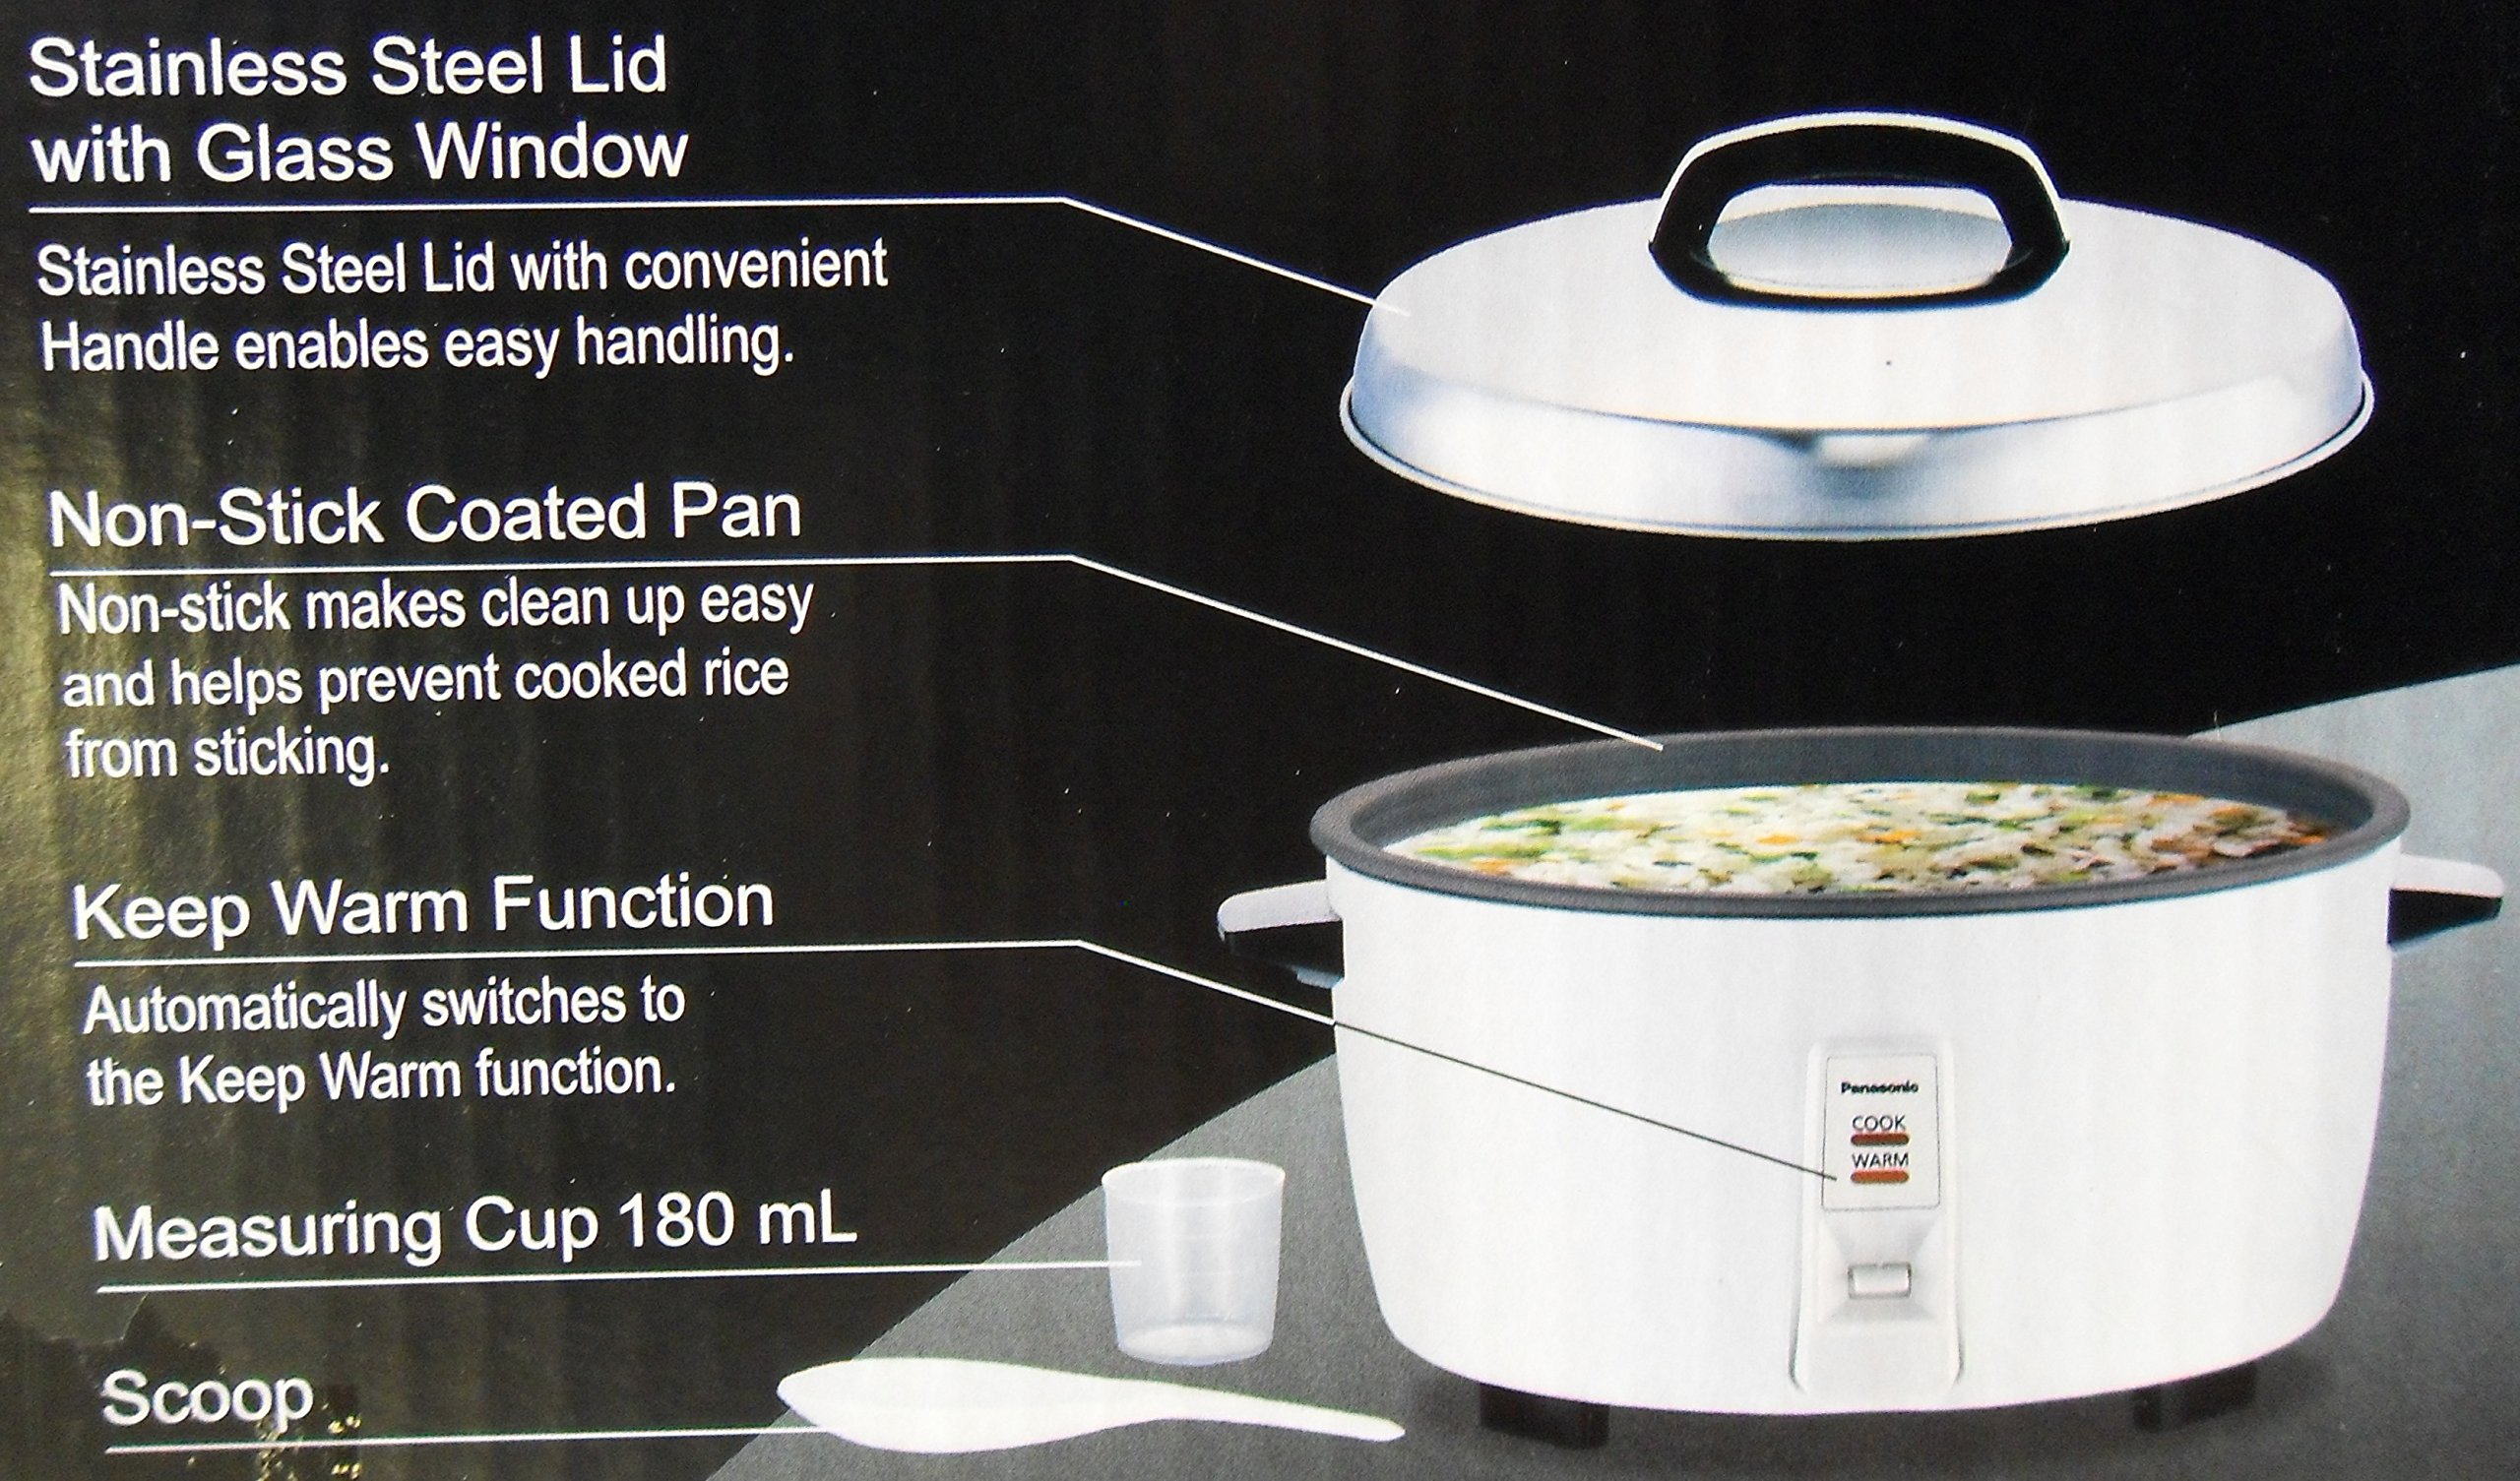 Panasonic SR-GA321FH 17 Cup Commercial Automatic Rice Cooker with Non-Stick Pan, White